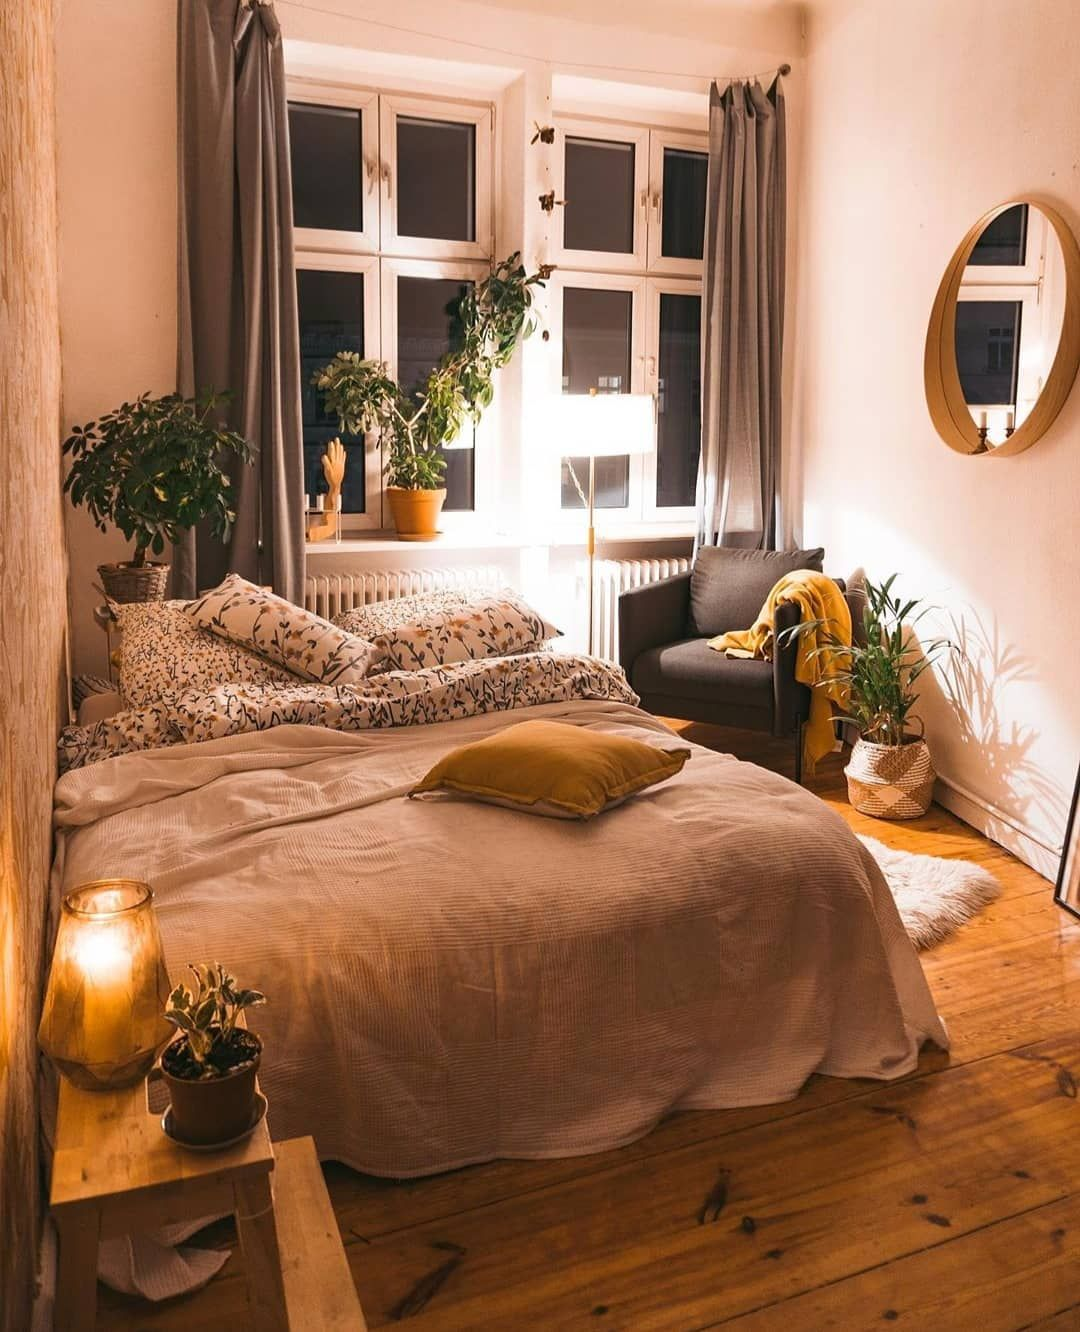 8 Cheap Things To Maximize A Small Bedroom With Images Small